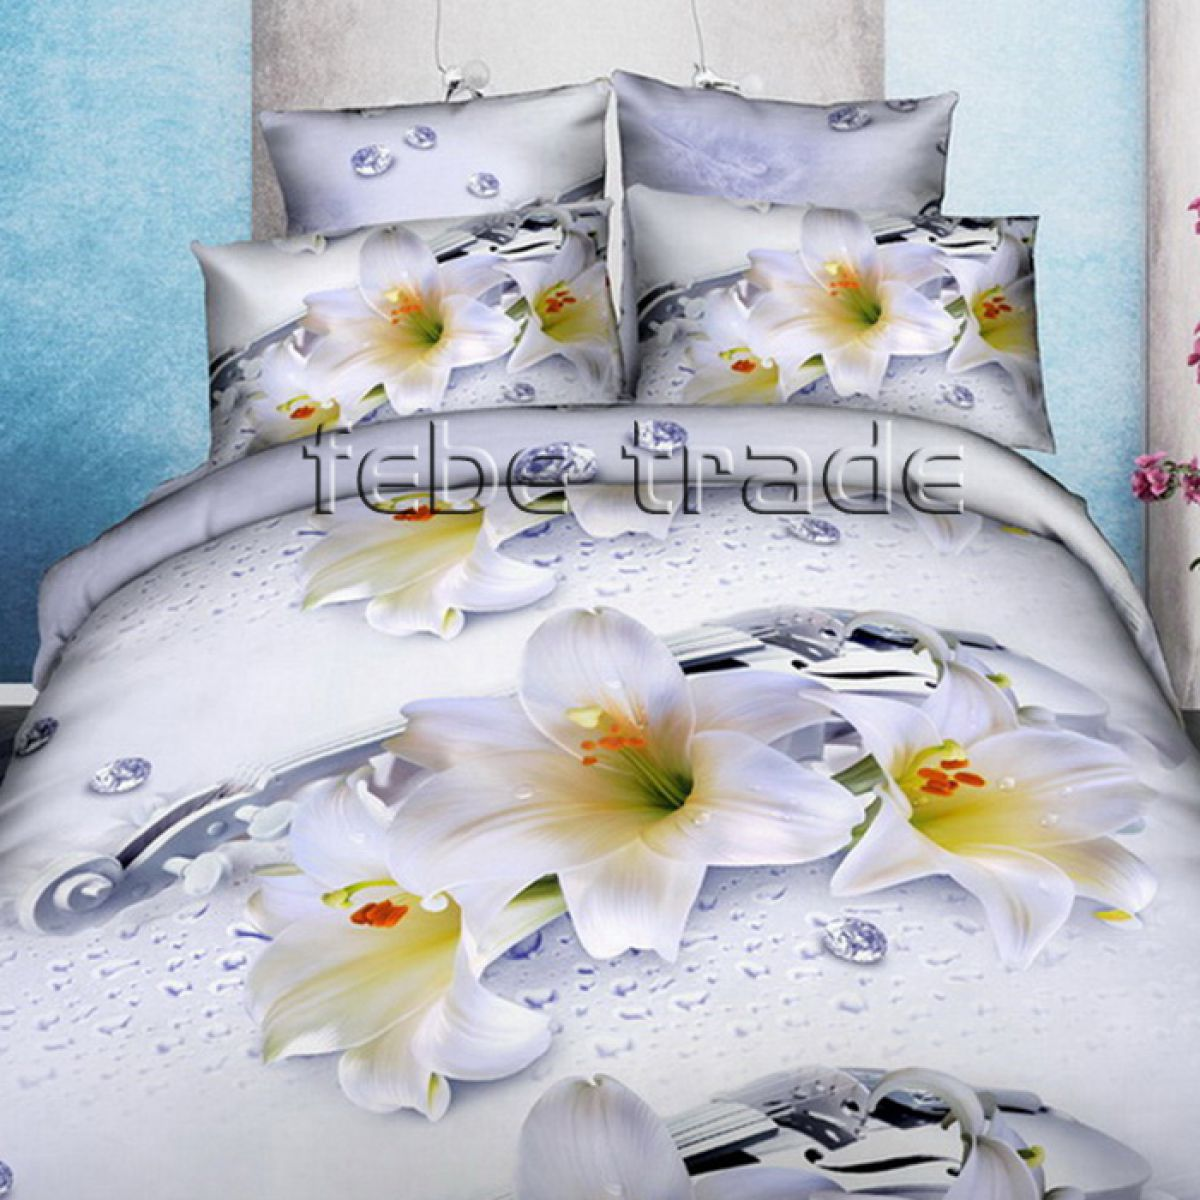 3D Beddings - Cotton World - FST-1712 - 180x200 cm - 3 pcs